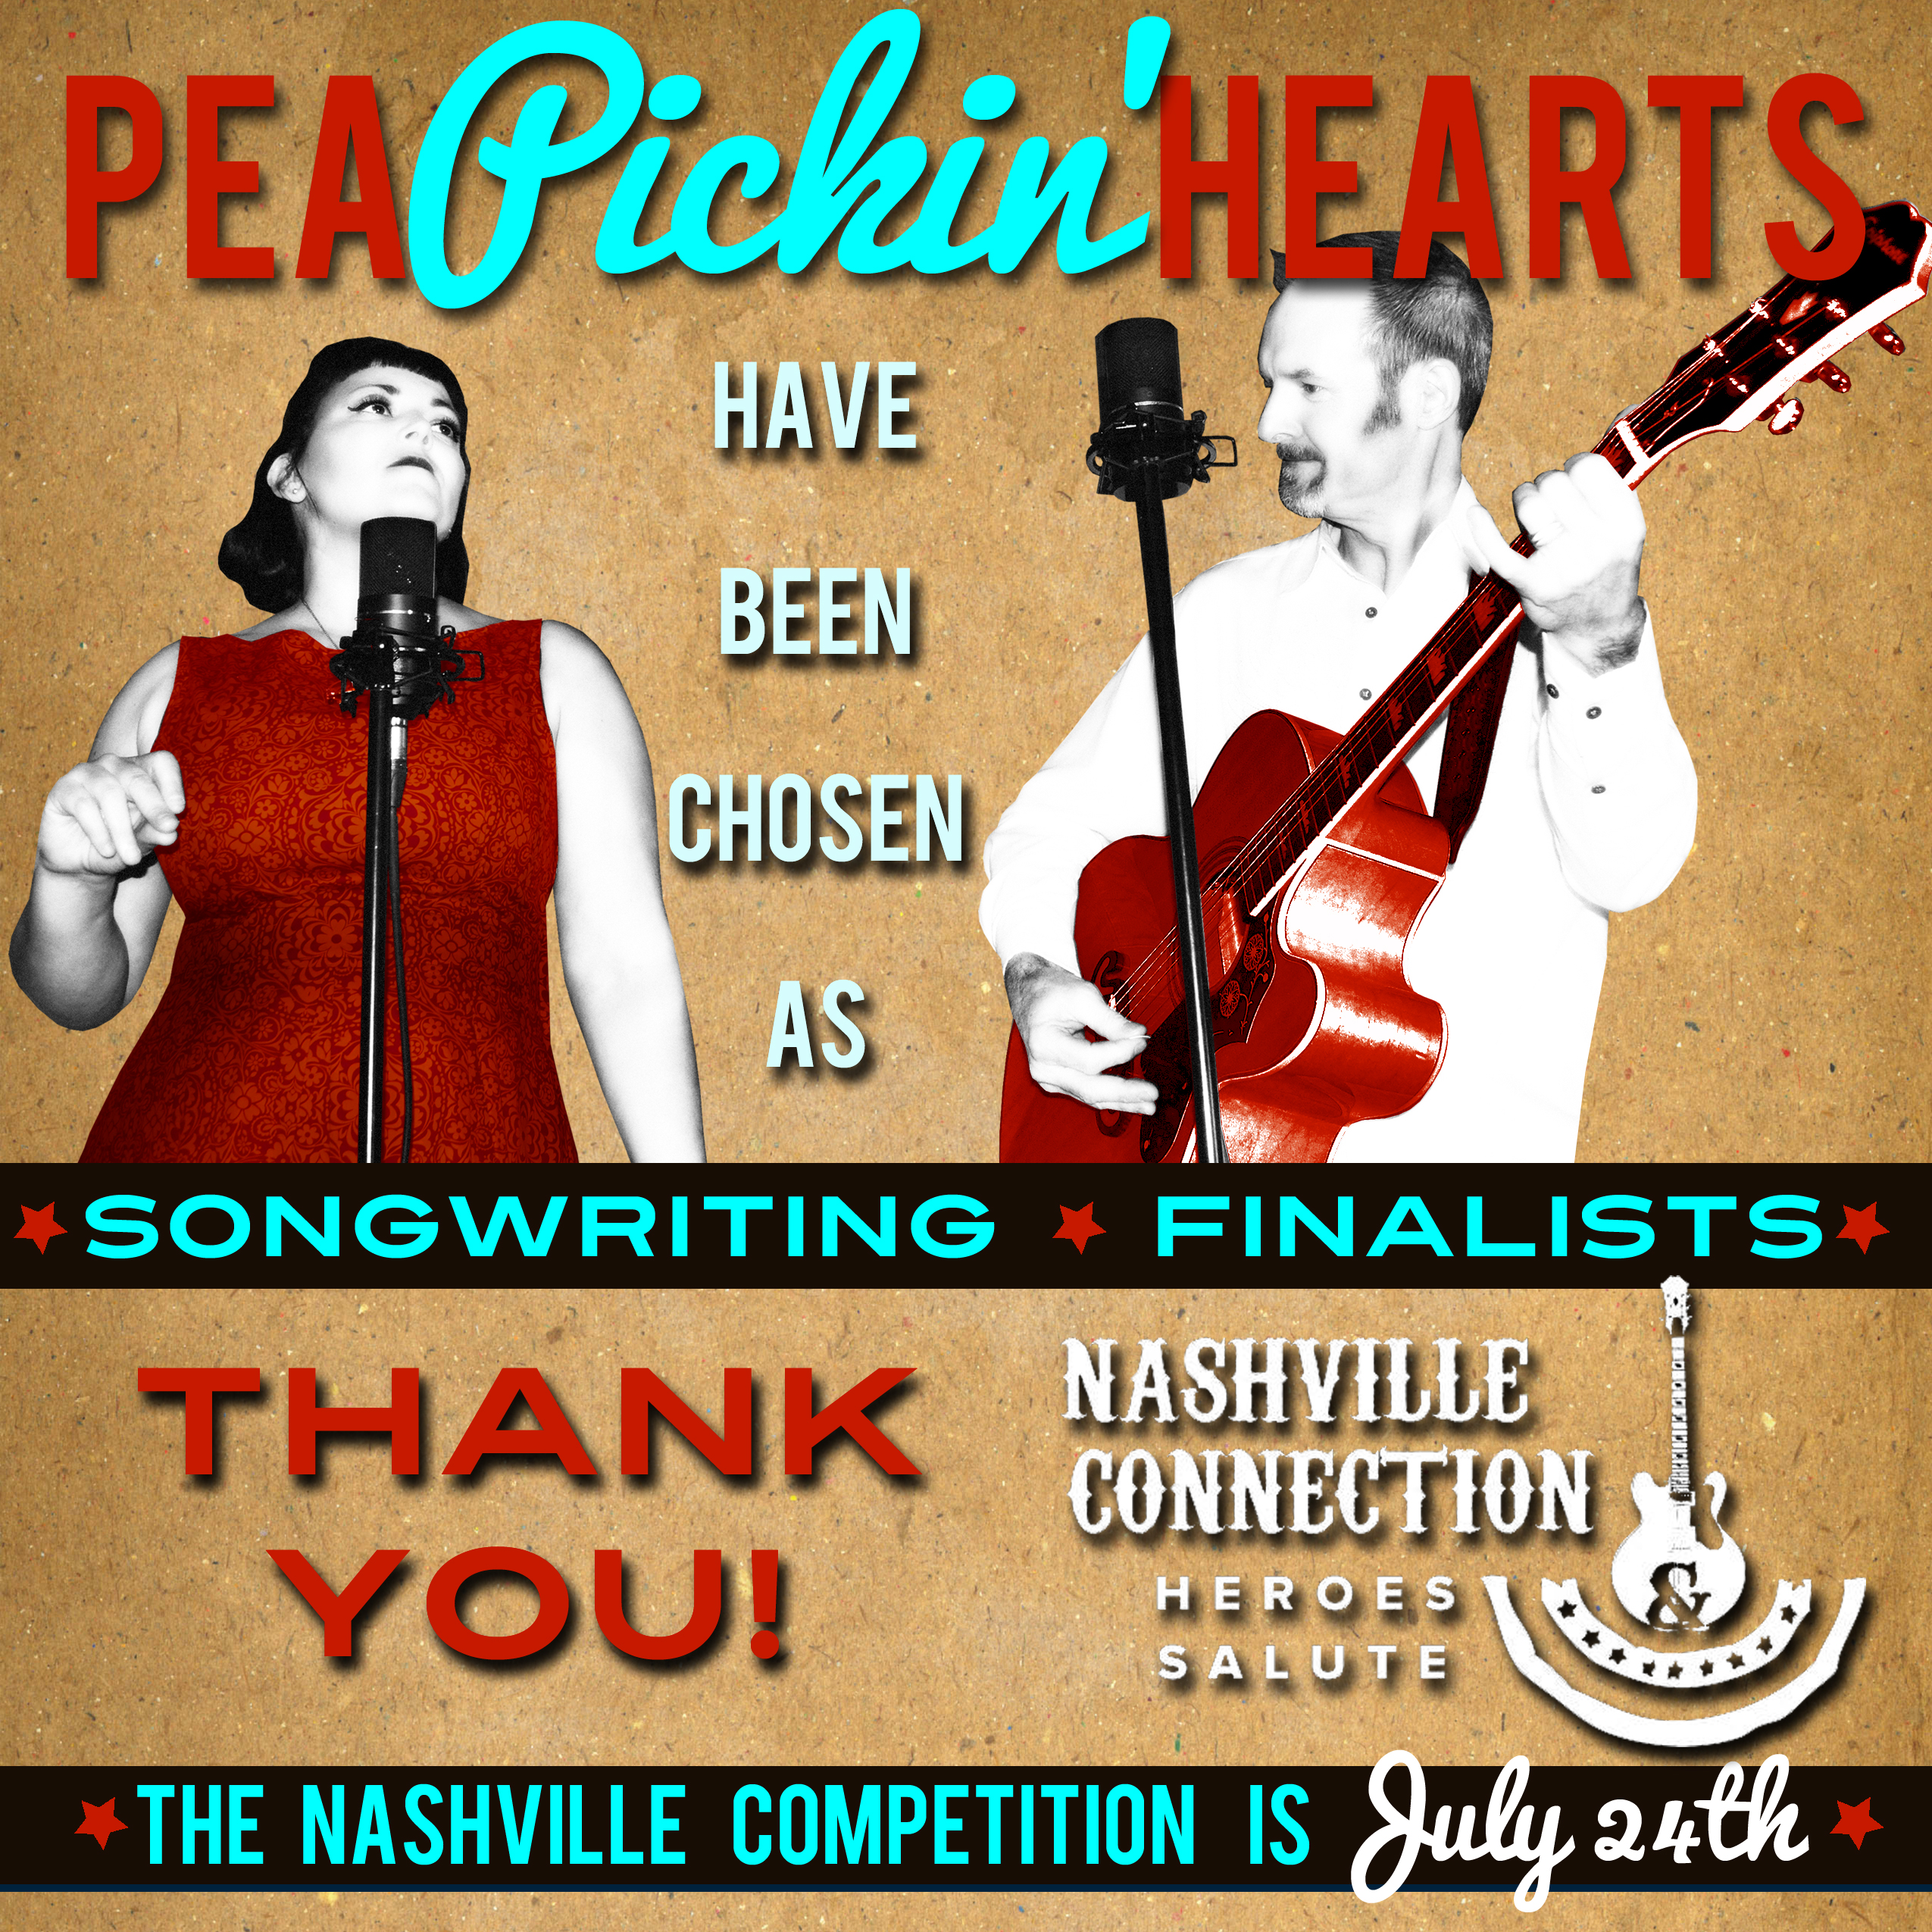 The Pea Pickin' Hearts are Songwriting Finalists for the Nashville  Connection 2015 Songwriting Competition!